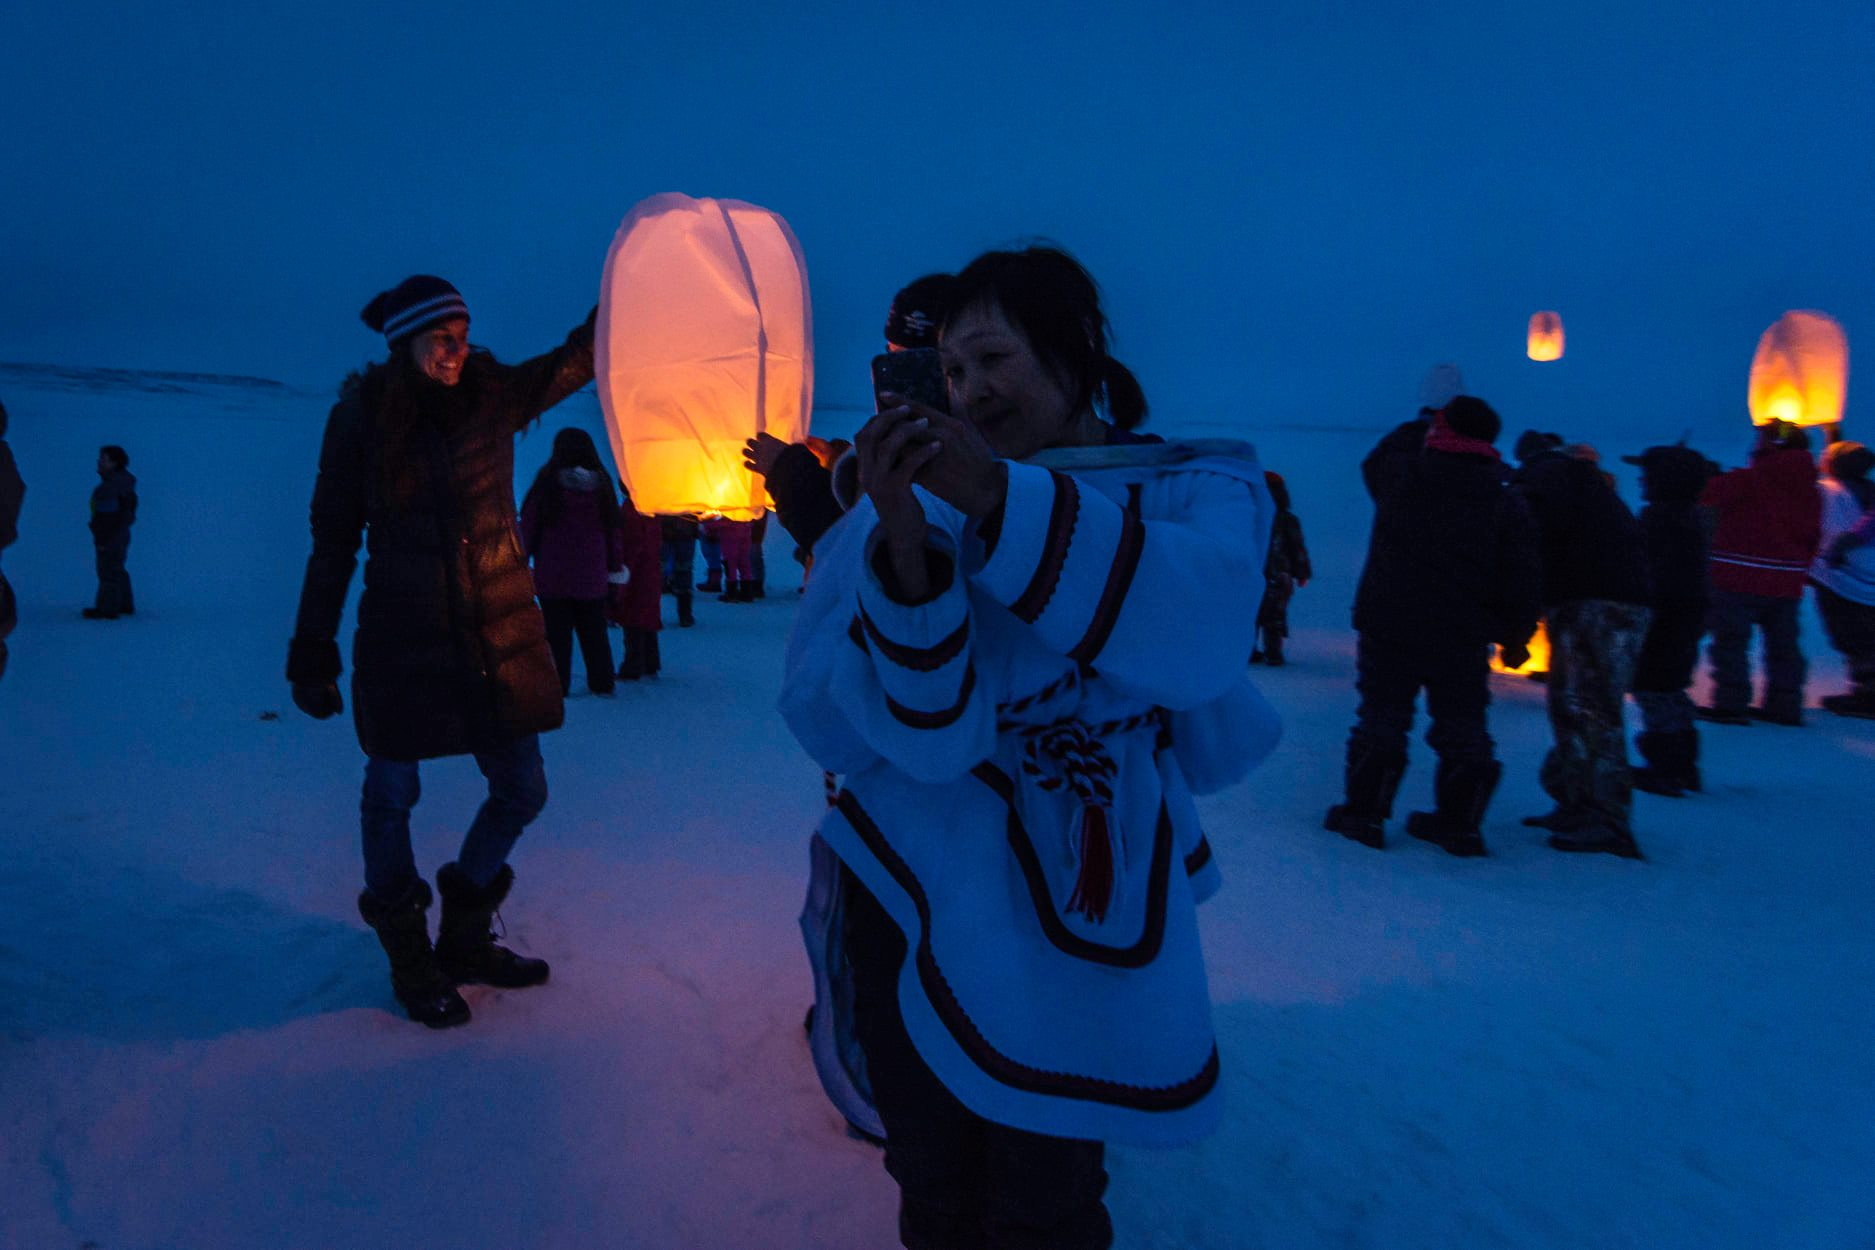 Inukjuak residents prepare to release sky lanterns on the evening of April 8. The event, attended by about 200 people, was held to remember loved ones that they had lost. (Photo by Sylvain Paradis)